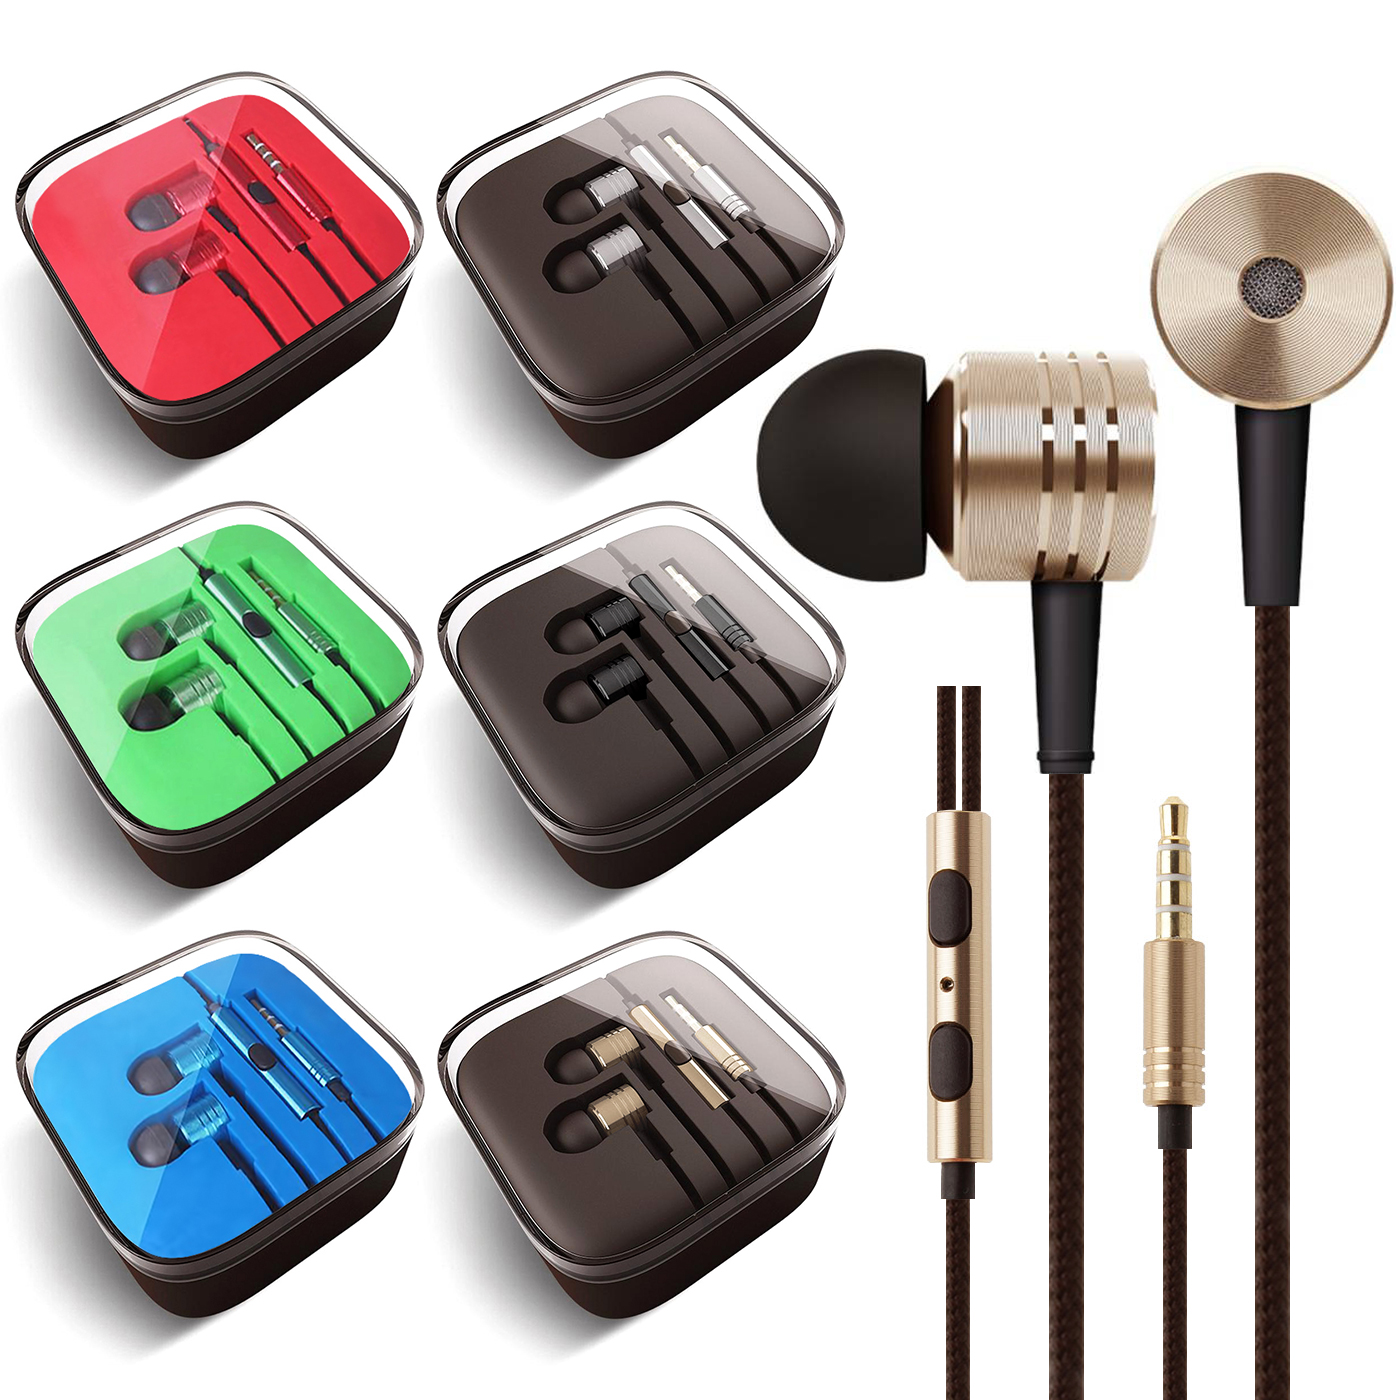 3.5mm Headphones In-Ear Earbuds Afflux Universal Stereo Headset Earphones For Cellphone Tablet iPhone 6 6S 5S SE 6/6S Plus Earbuds iPod iPad Samsung Galaxy S9 S8 S7 S6 Note 5 Note 8 9 LG Stylo